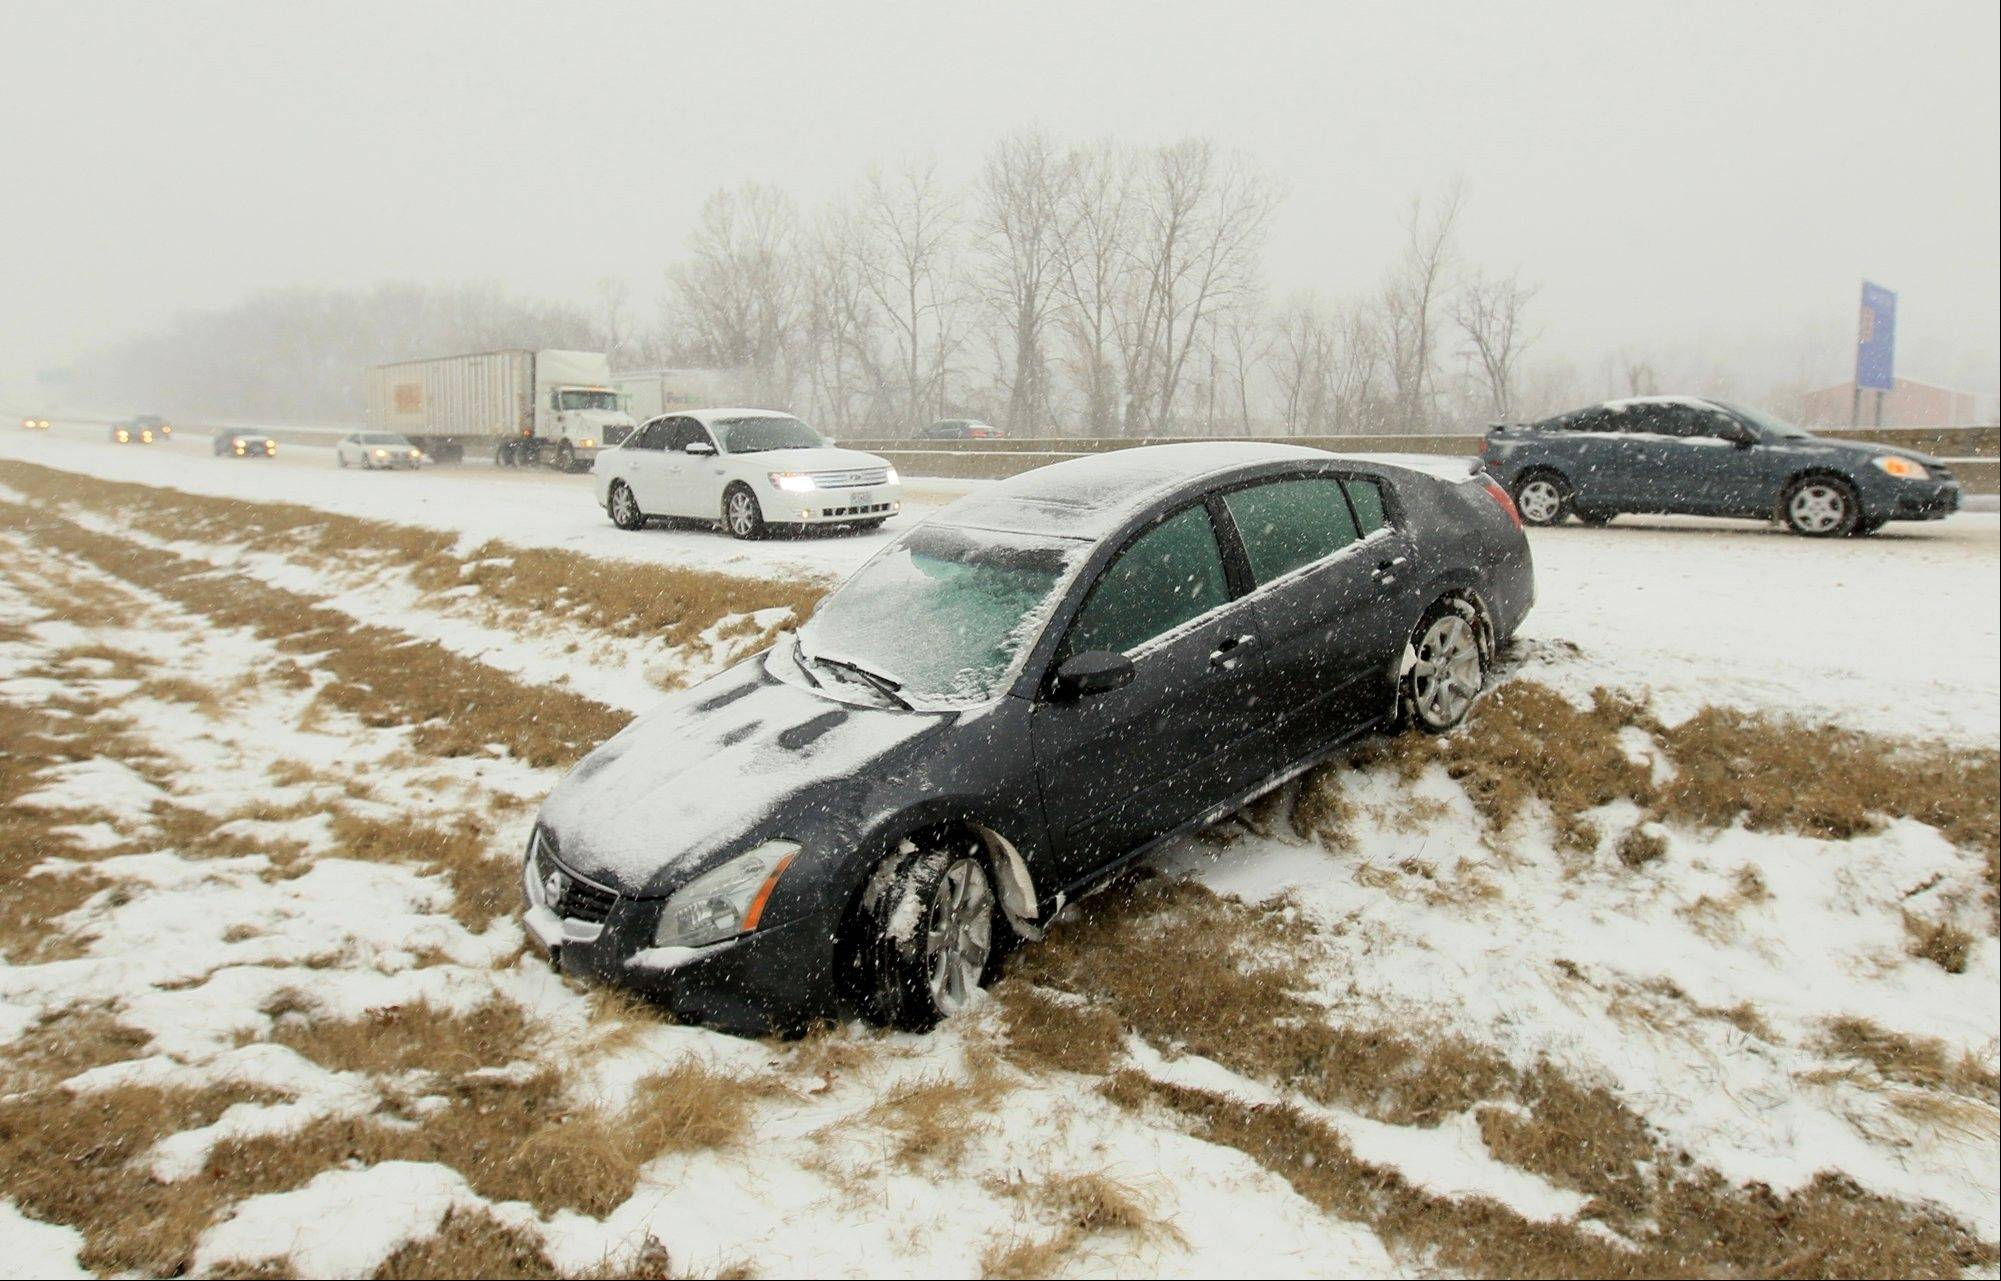 A car is stuck in a ditch after spuning out on Interstate 70 East near Lake Saint Louis, Mo., on Thursday. Blinding snow, at times accompanied by thunder and lightning, bombarded much of the nation�s midsection Thursday, causing whiteout conditions, making major roadways all but impassable and shutting down schools and state legislatures. Freezing rain and sleet were forecast for southern Missouri, southern Illinois and Arkansas.